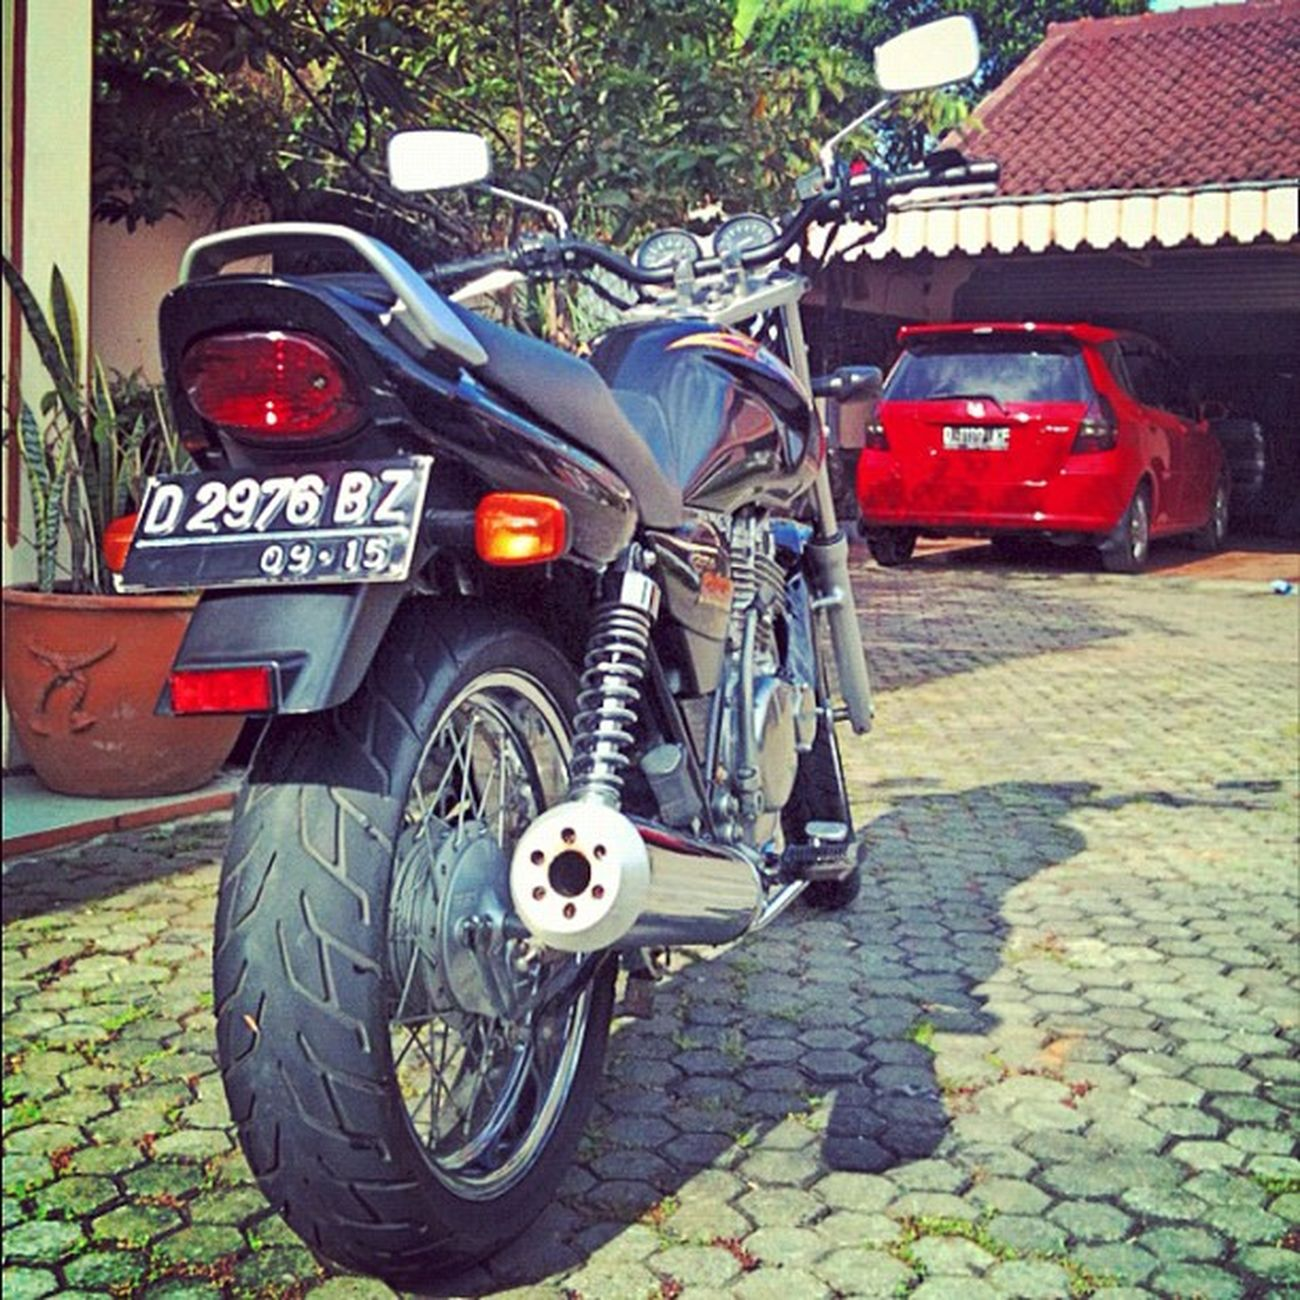 Iphonesia Bike Gsx250